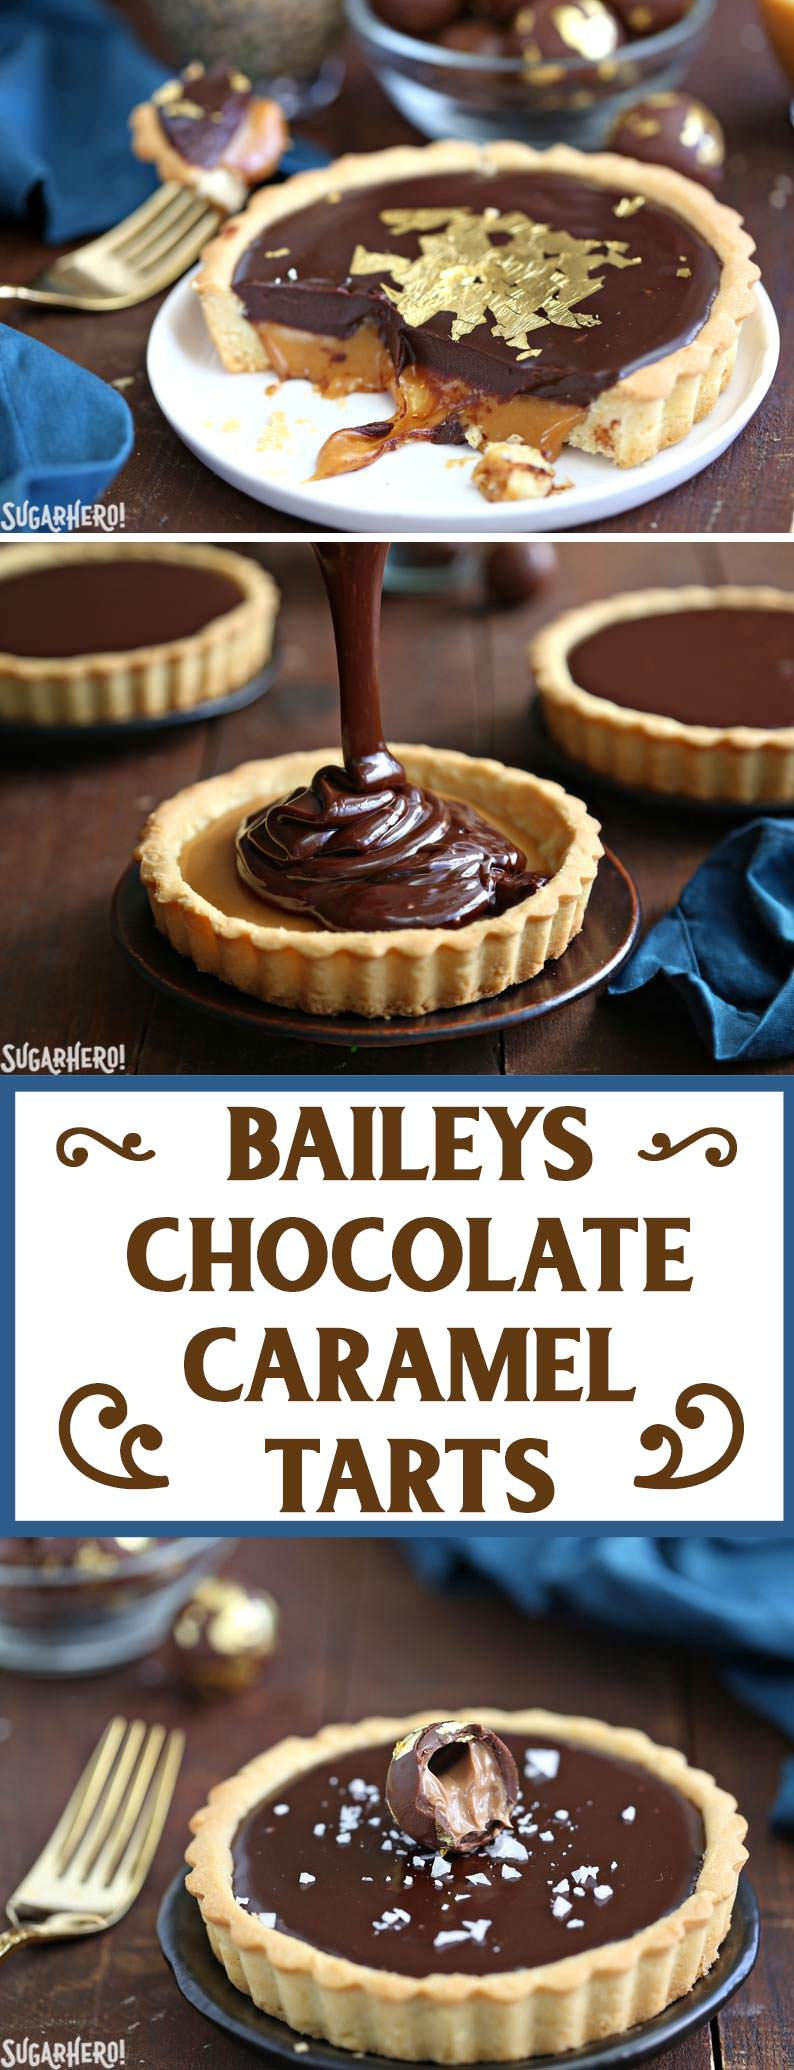 Baileys Chocolate Caramel Tarts - gorgeous mini tarts with a Baileys salted caramel filling and Baileys chocolate ganache!